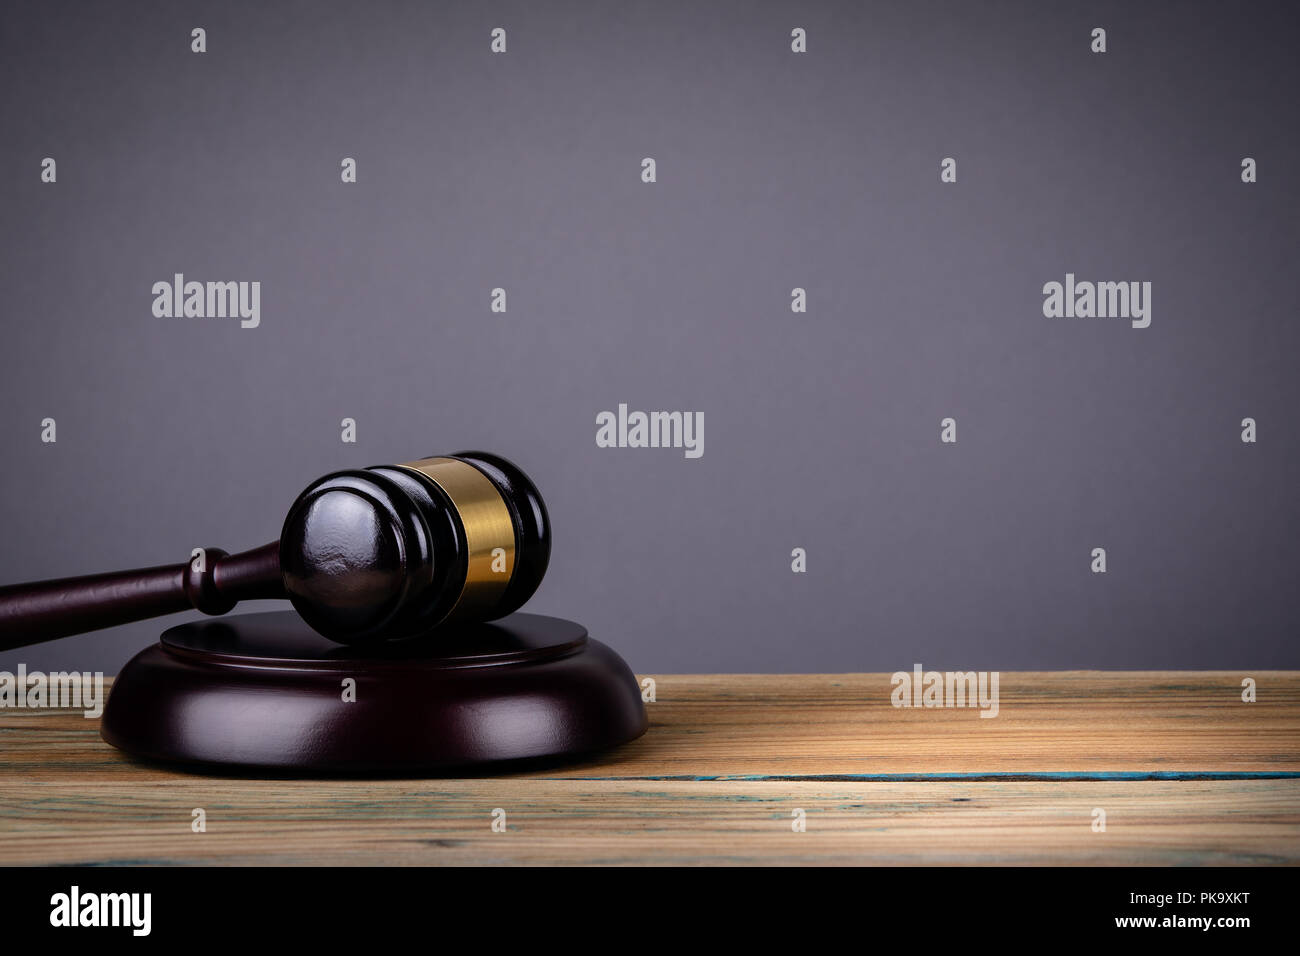 Law and Justice concept with gavel - Stock Image